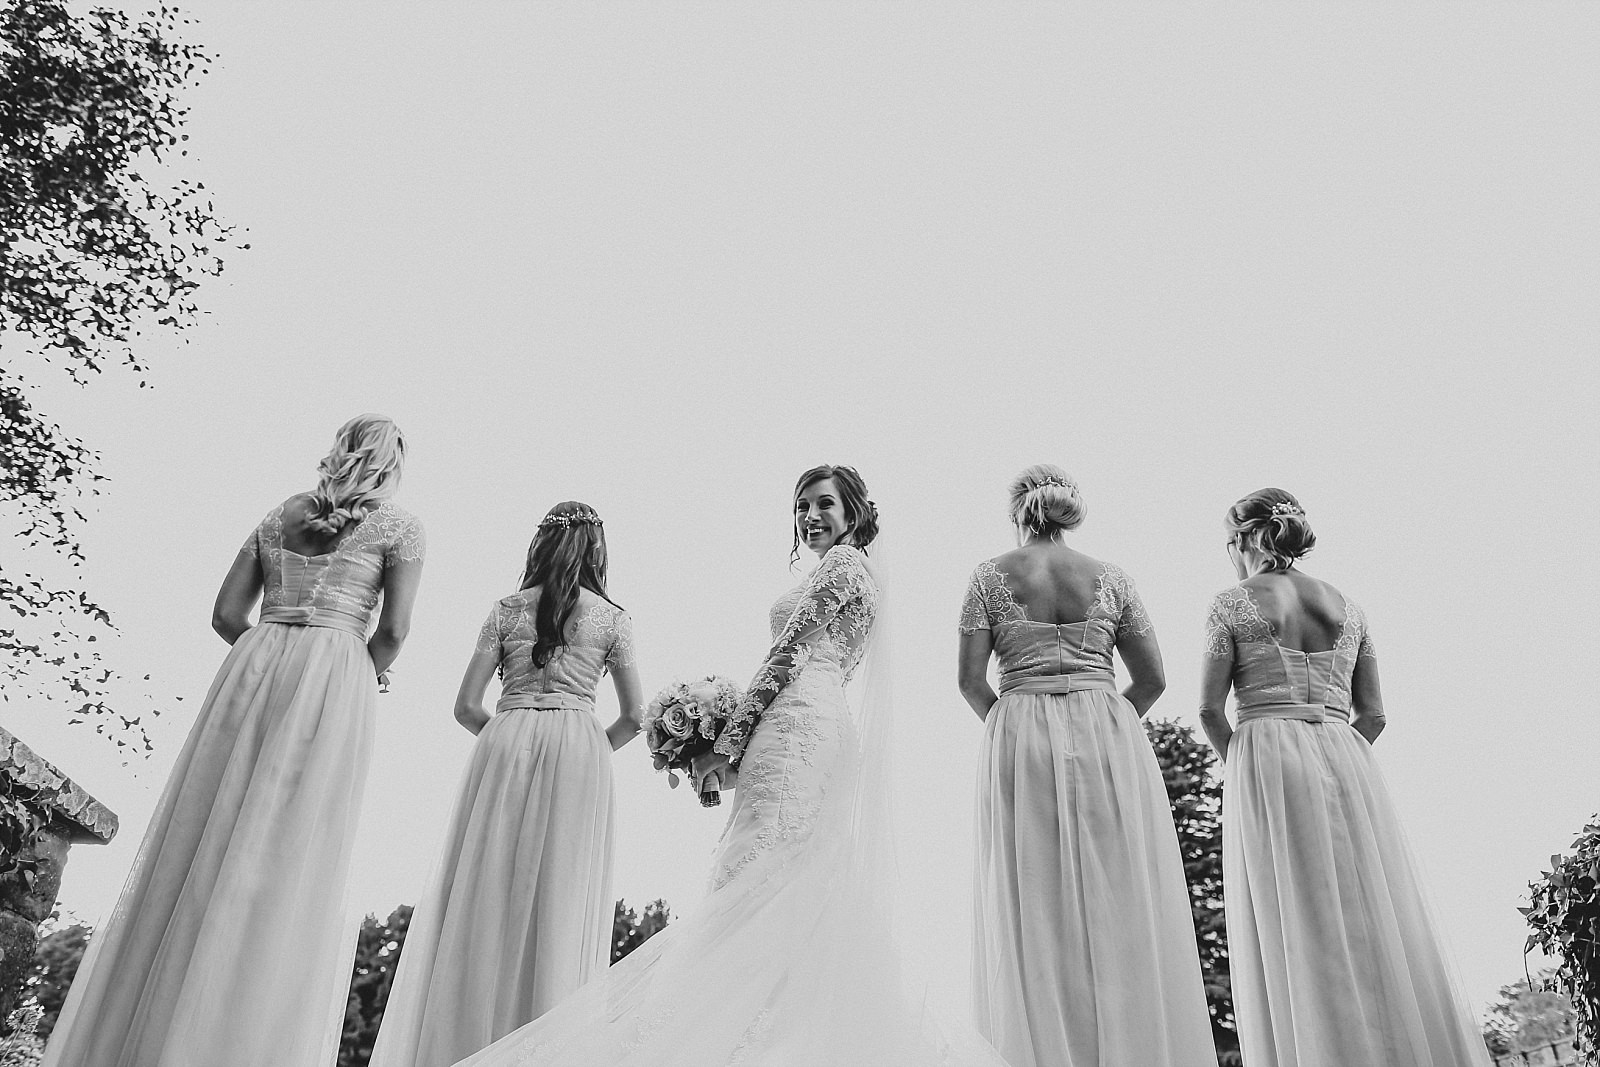 eaves hall wedding photographer shoots the bride and bridesmaids